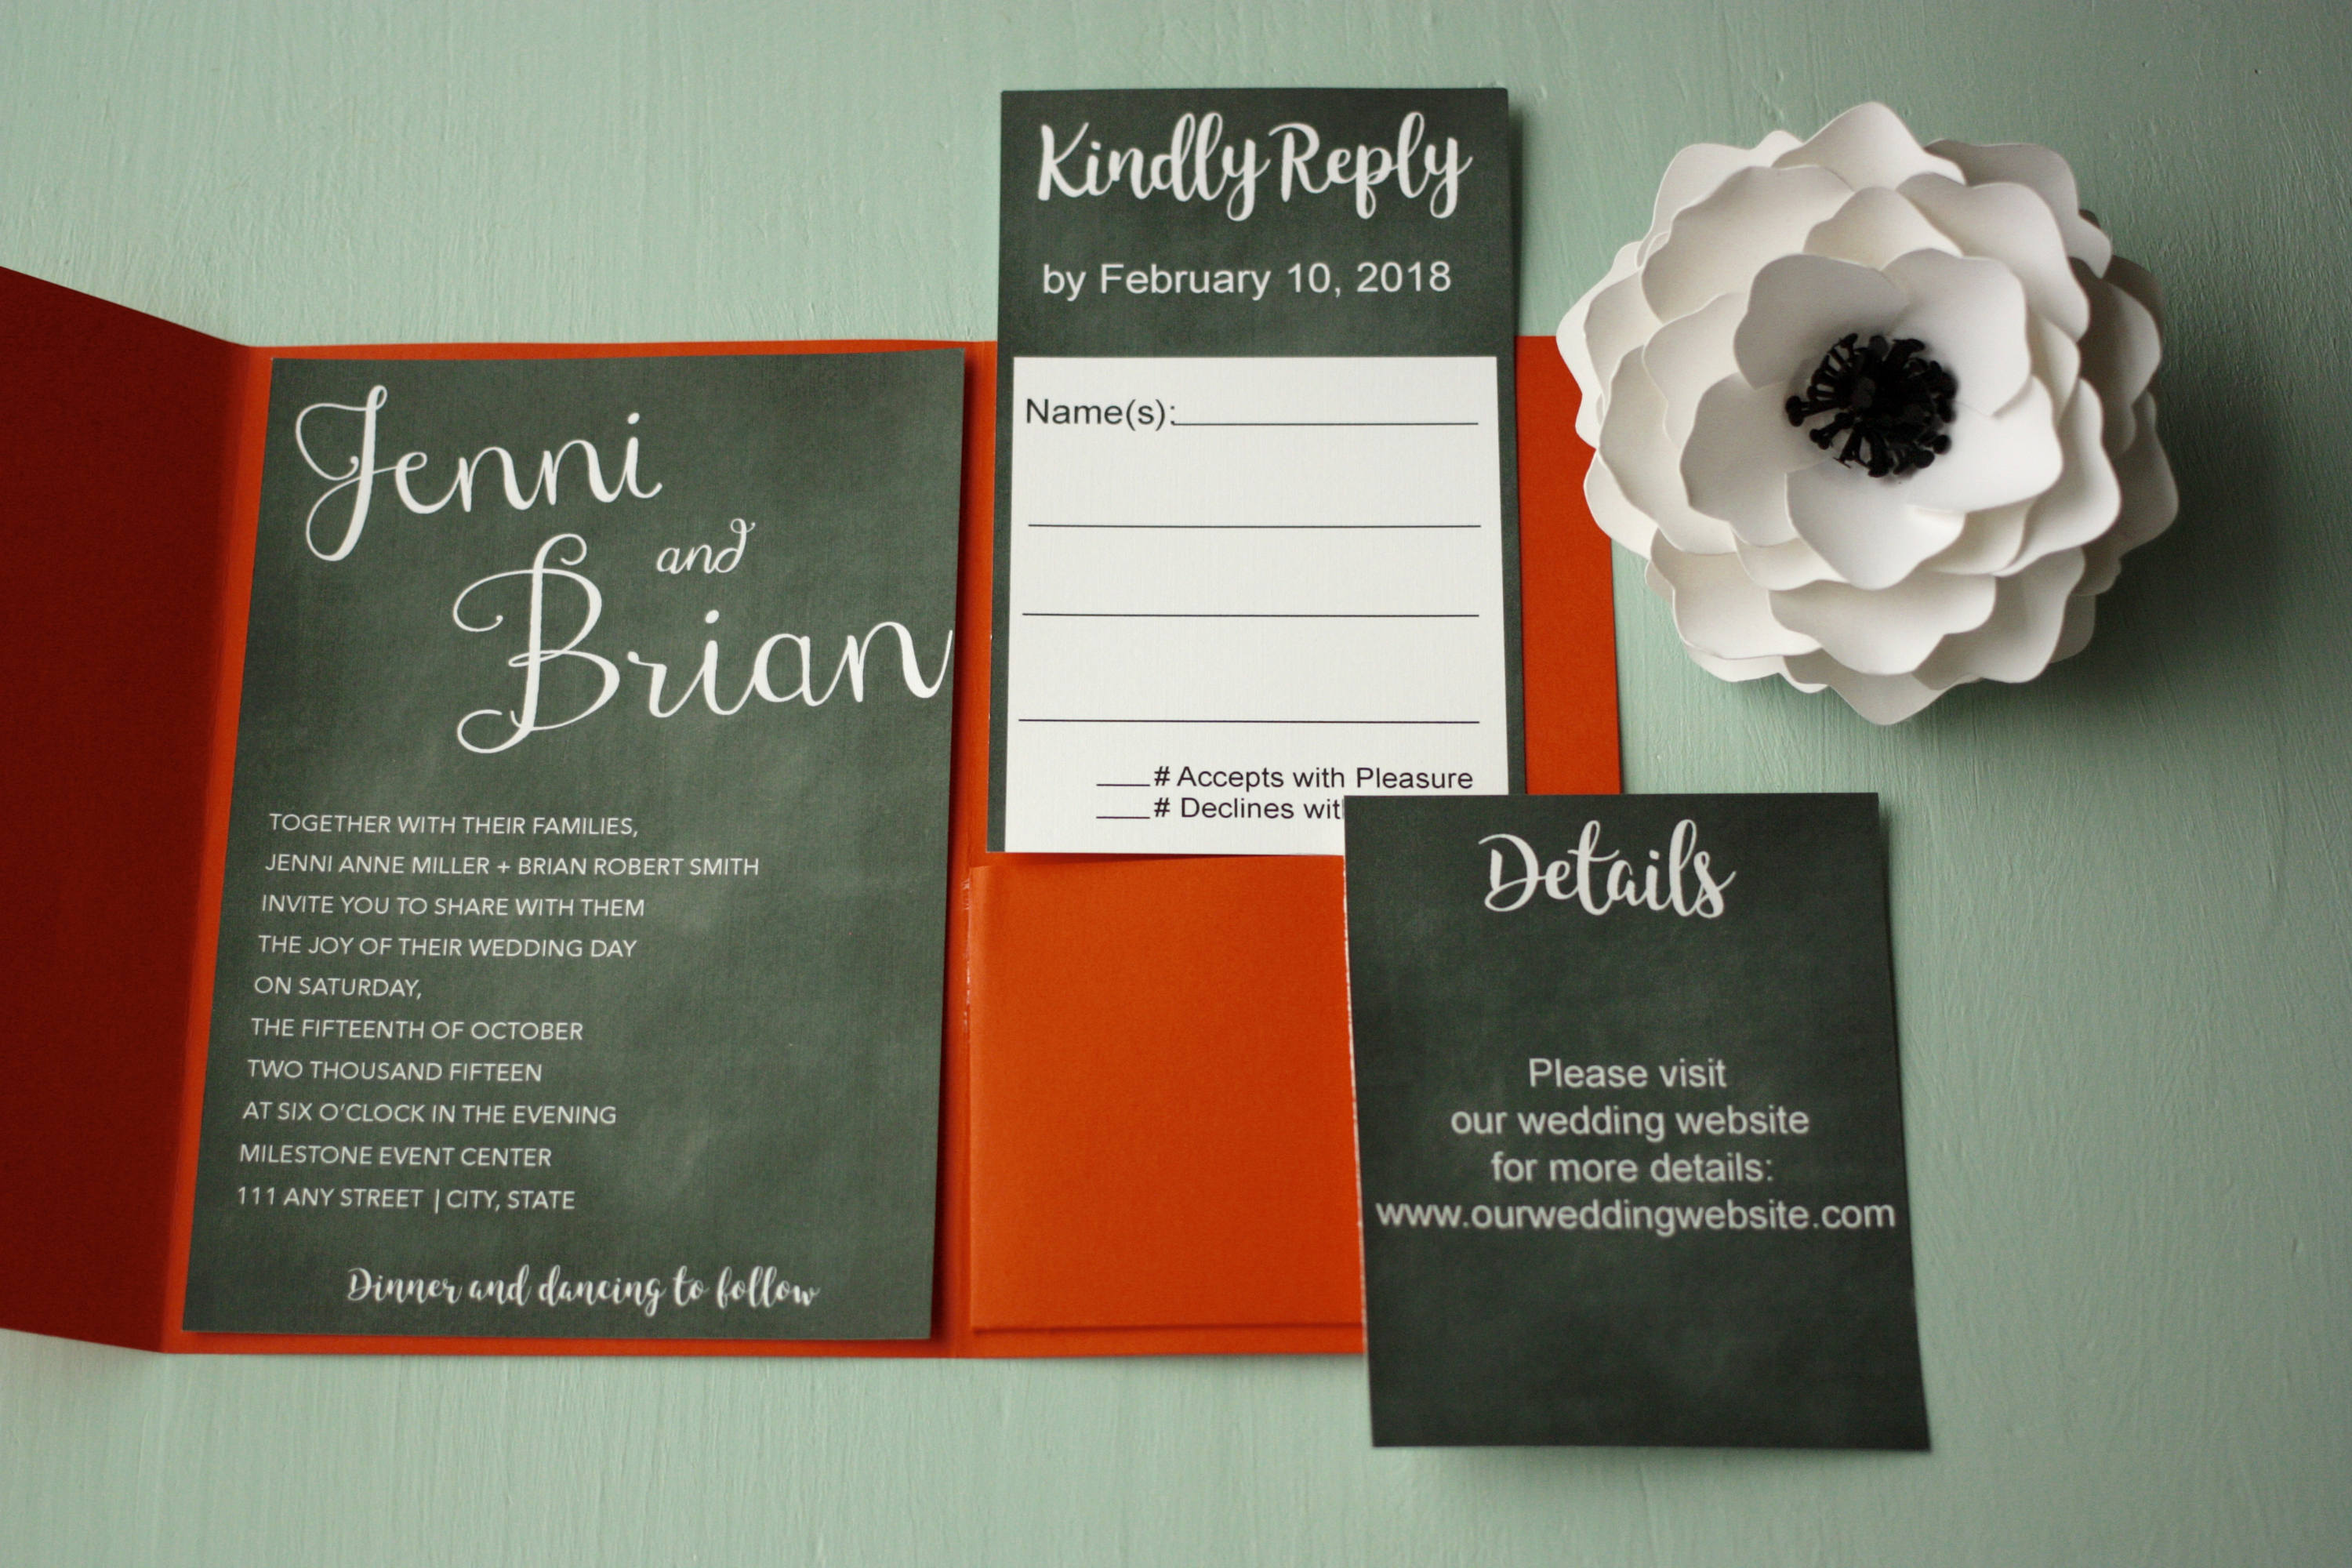 Beautiful Wedding Invitation Etiquette Family Photos - Invitations ...